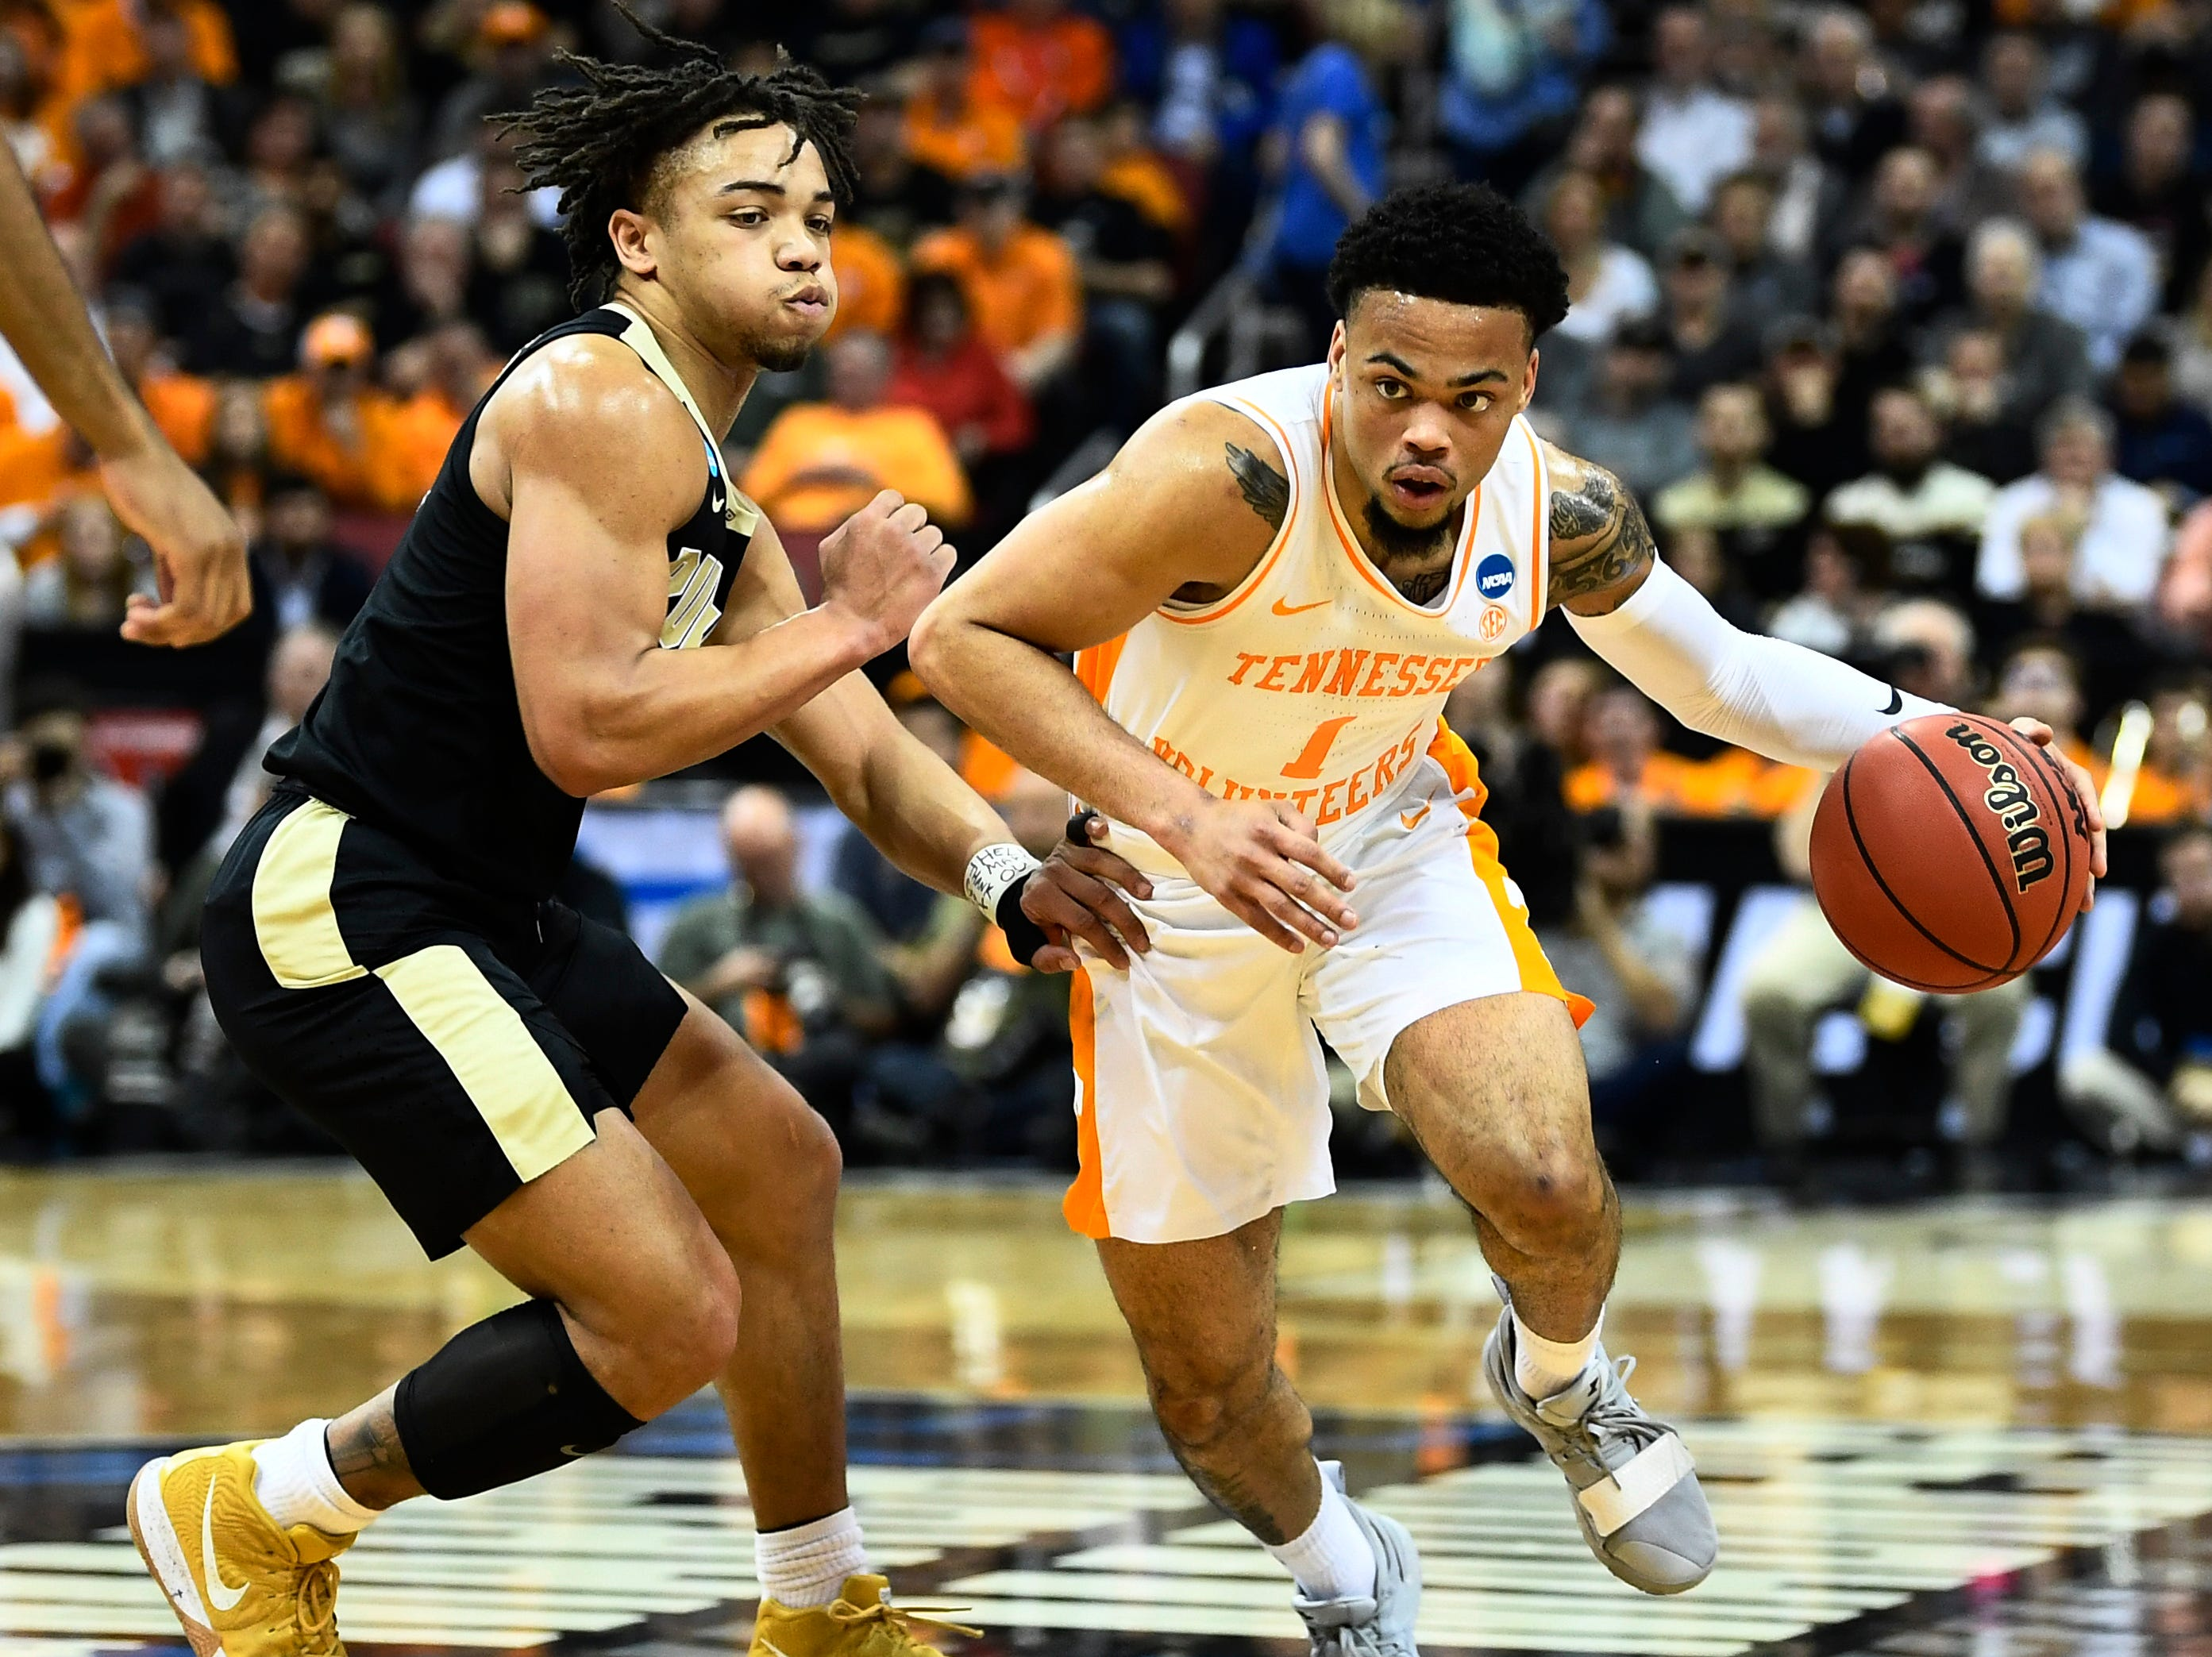 Tennessee guard Lamonte Turner (1) drives past Purdue guard Carsen Edwards (3) during the Sweet 16 game in the NCAA Tournament Thursday, March 28, 2019, at the KFC Yum! Center in Louisville, Ky.